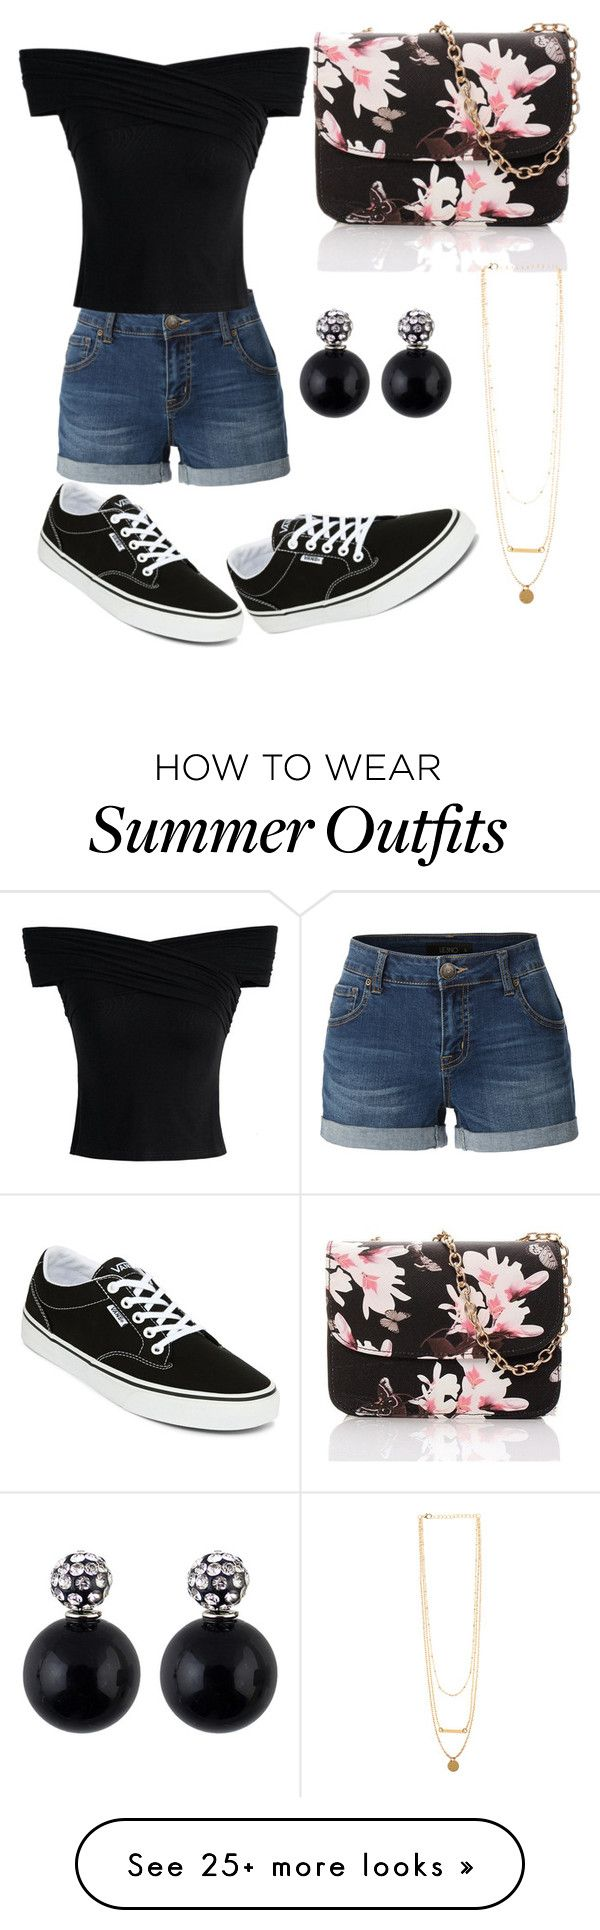 bf10741fdfb Summer Outfits